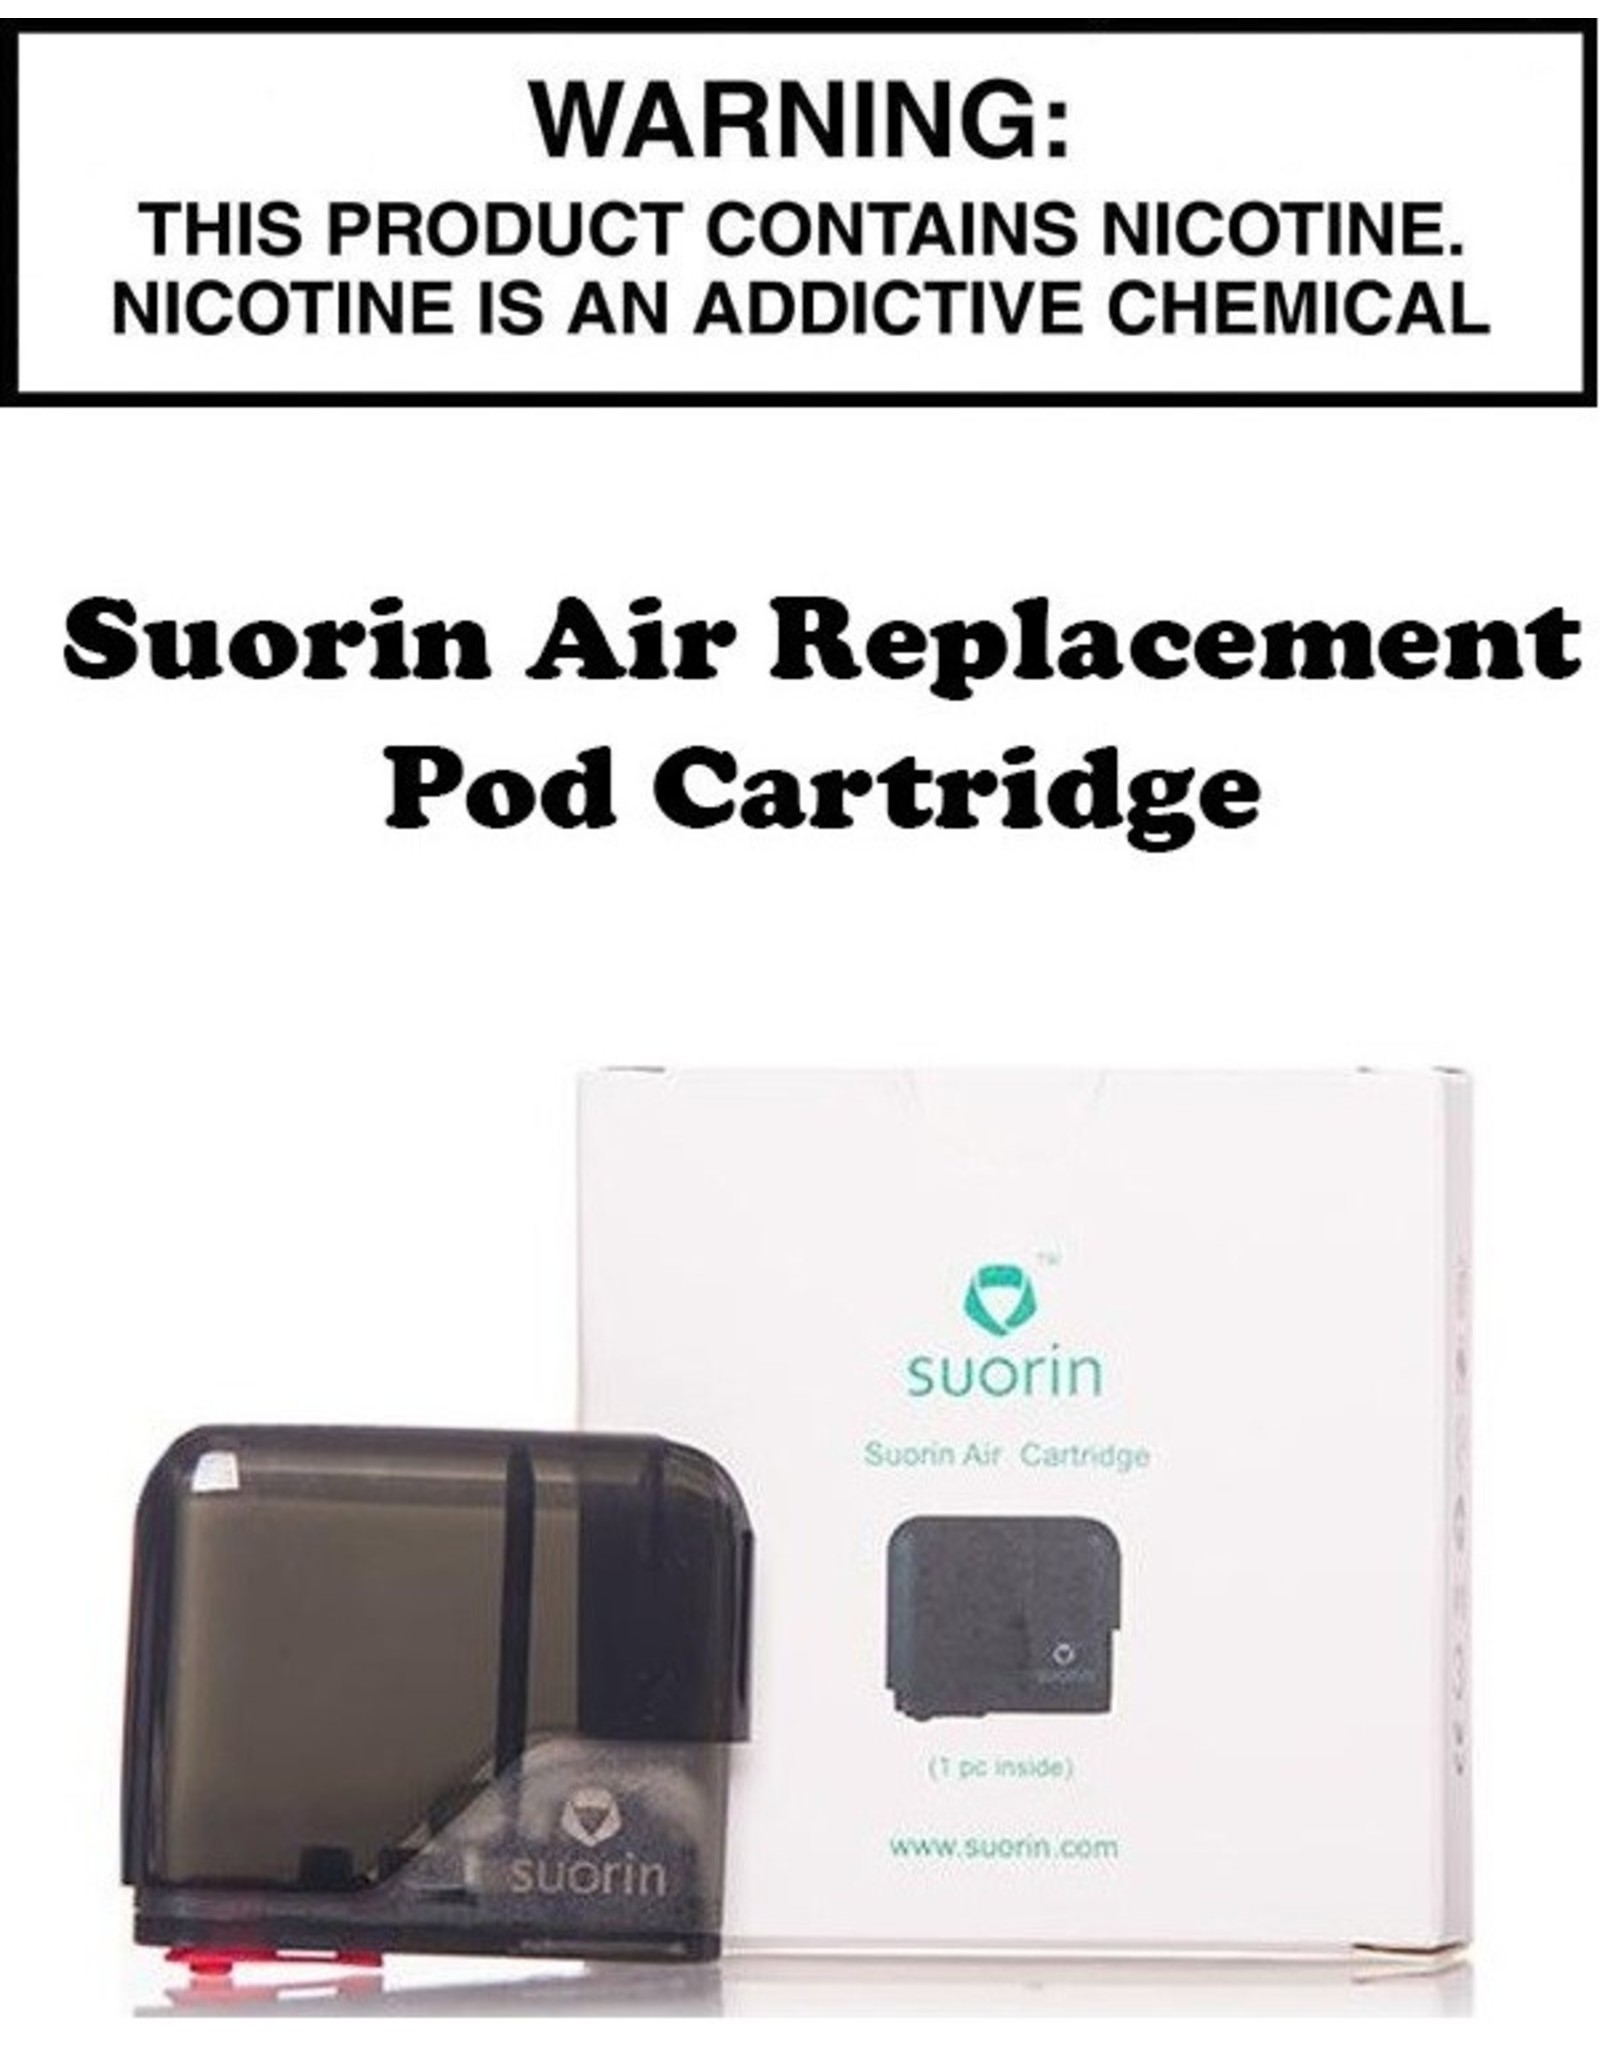 Suorin Suorin Air Replacement Pod Cartridge - 2ML